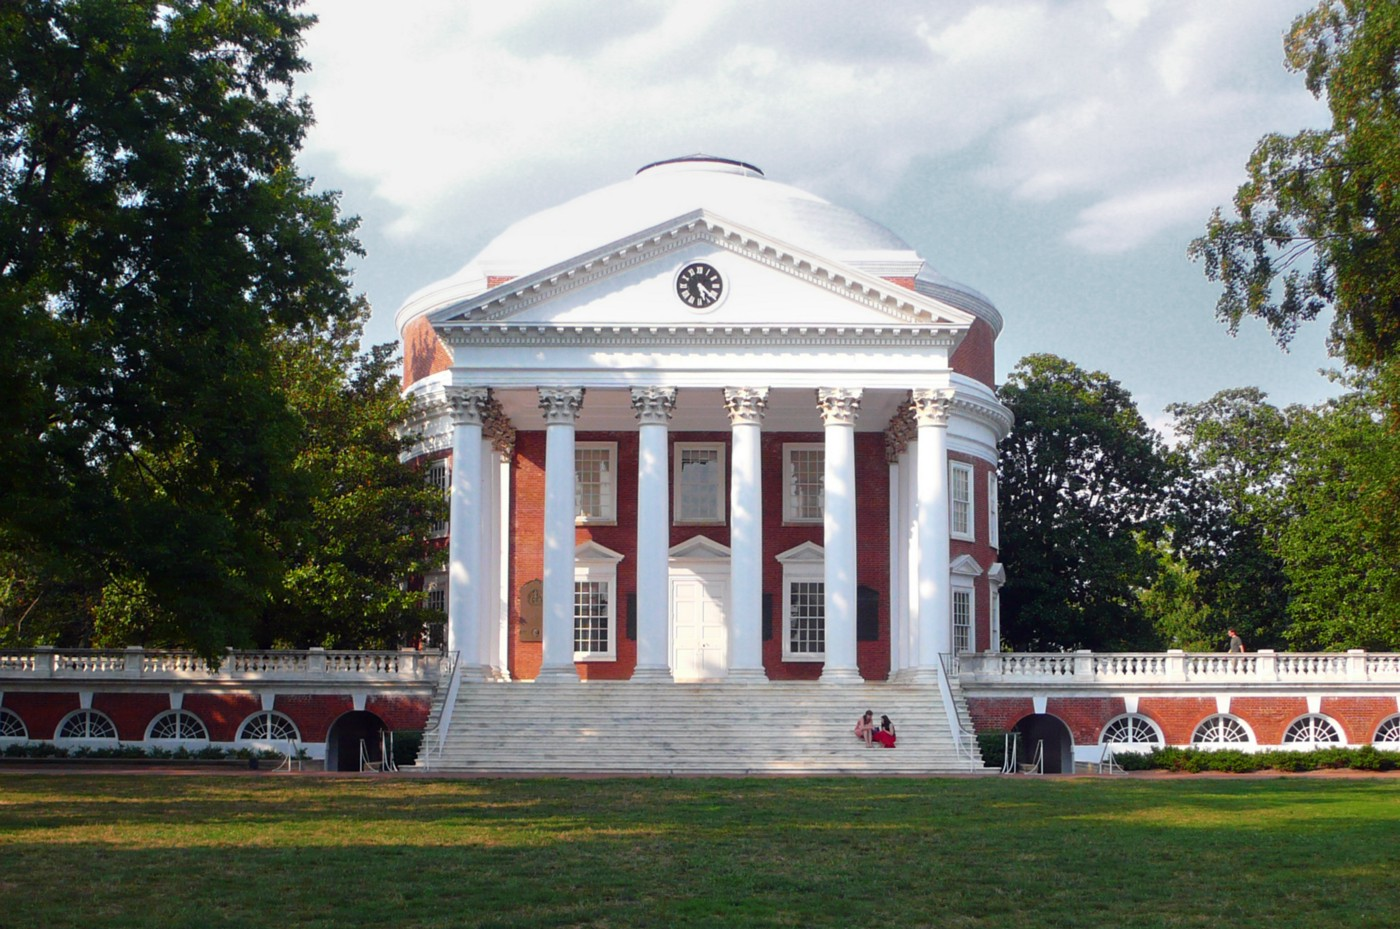 University of Virginia Rotunda with green lawn and blue sky beyond.